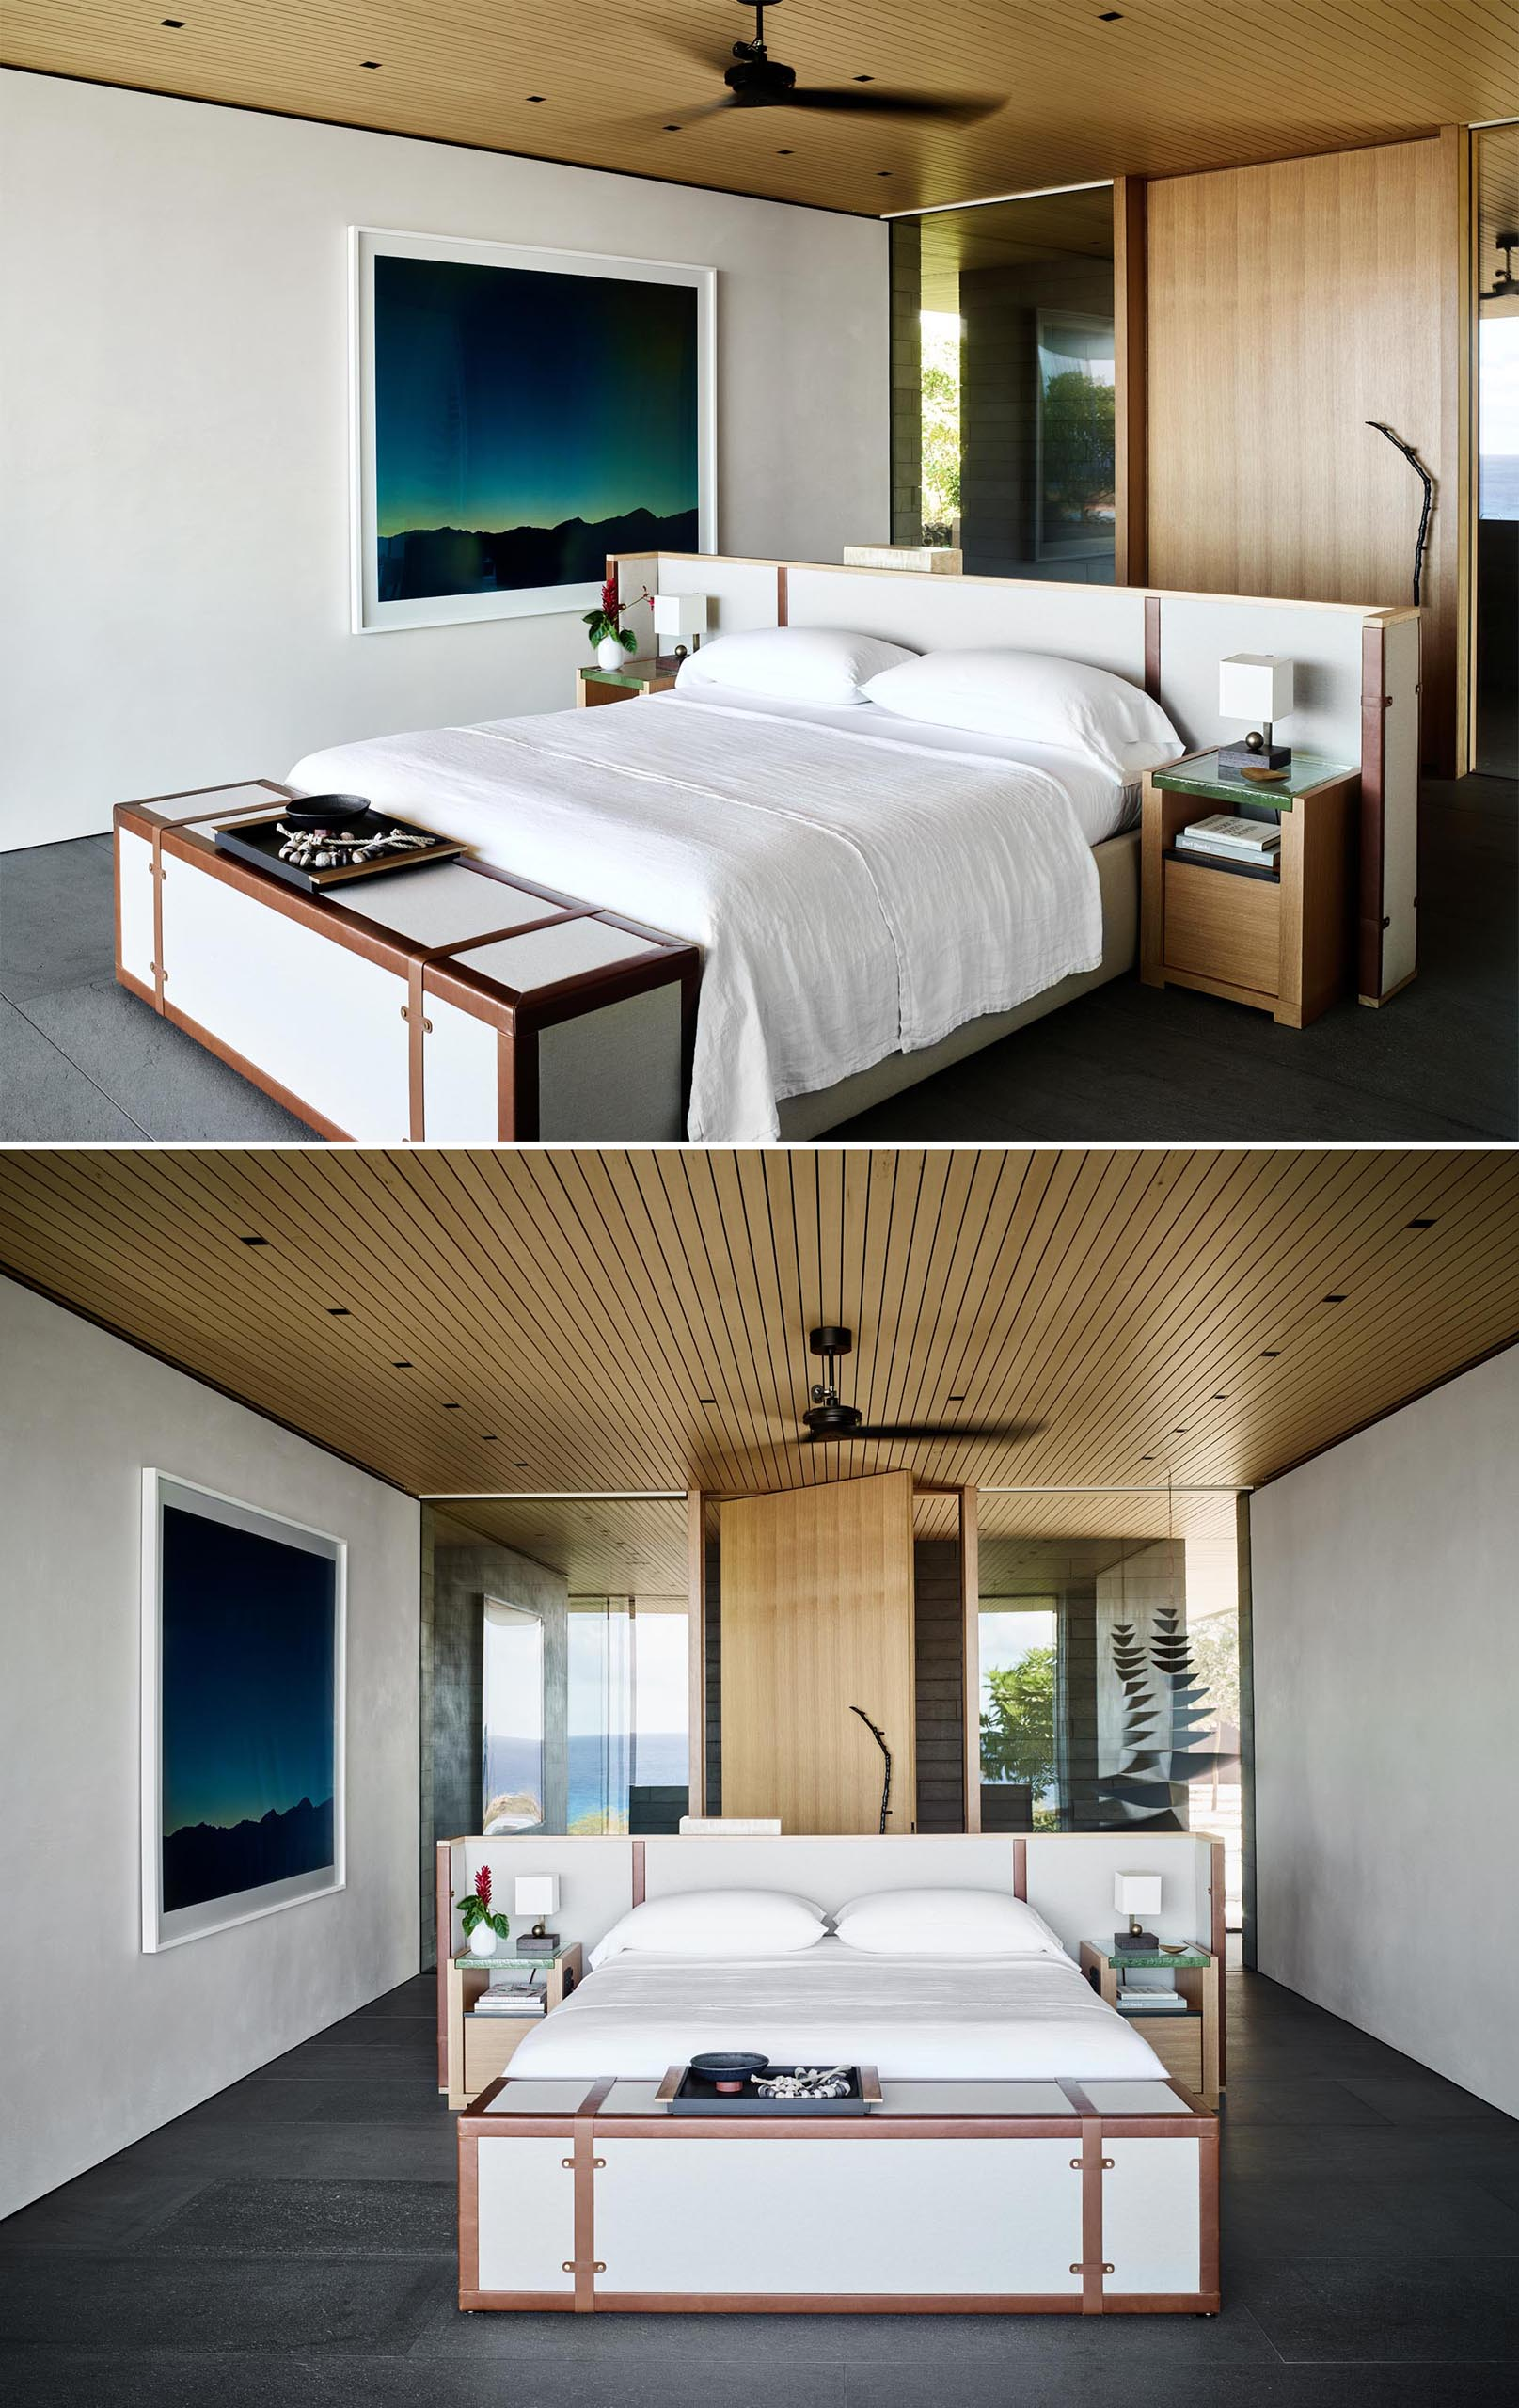 In this modern master bedroom, the bed frame has been centrally positioned in the room to take advantage of the views. There's also a hidden television at the end of the bed, and behind the headboard, there's a desk.